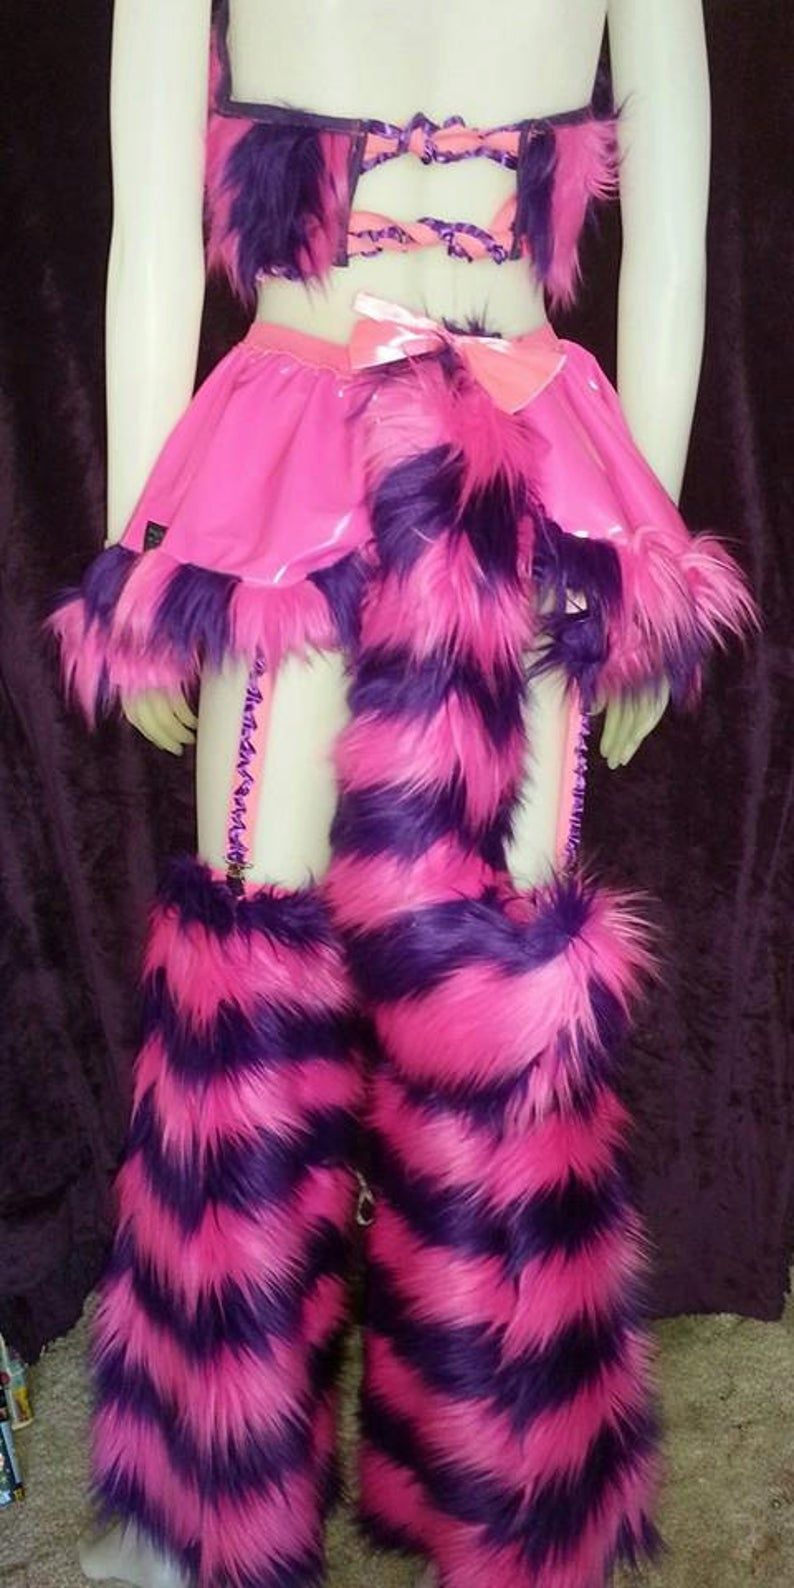 Cheshire cat vinyl / fur skirt with tail festival burning